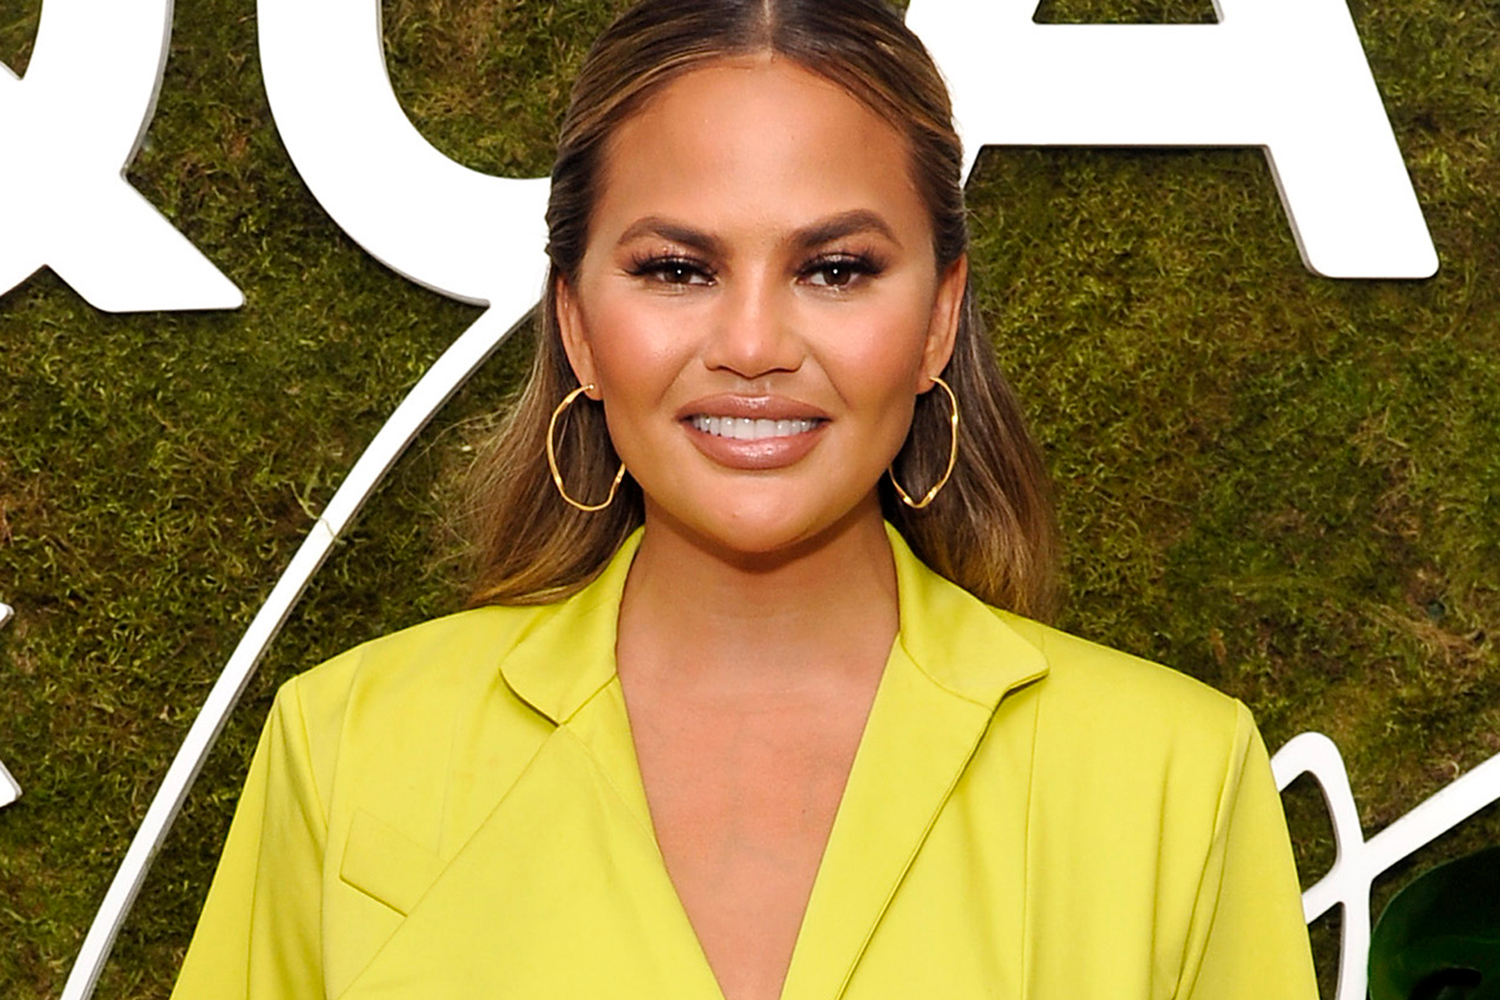 Chrissy Teigen Just Shared Graphic Photos Of Her Breast Implant Removal